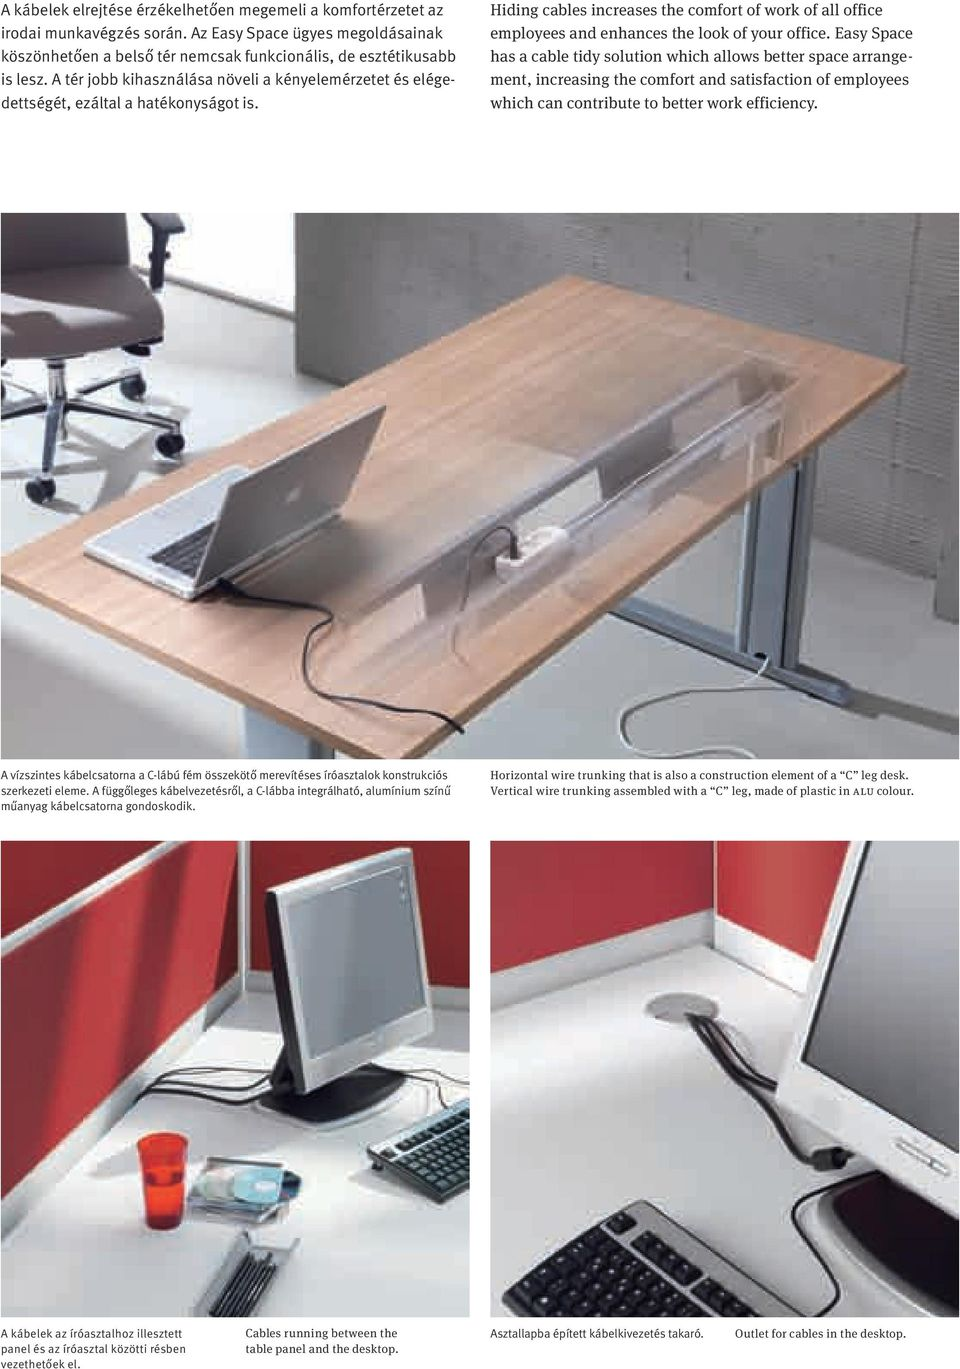 Hiding cables increases the comfort of work of all office employees and enhances the look of your office.